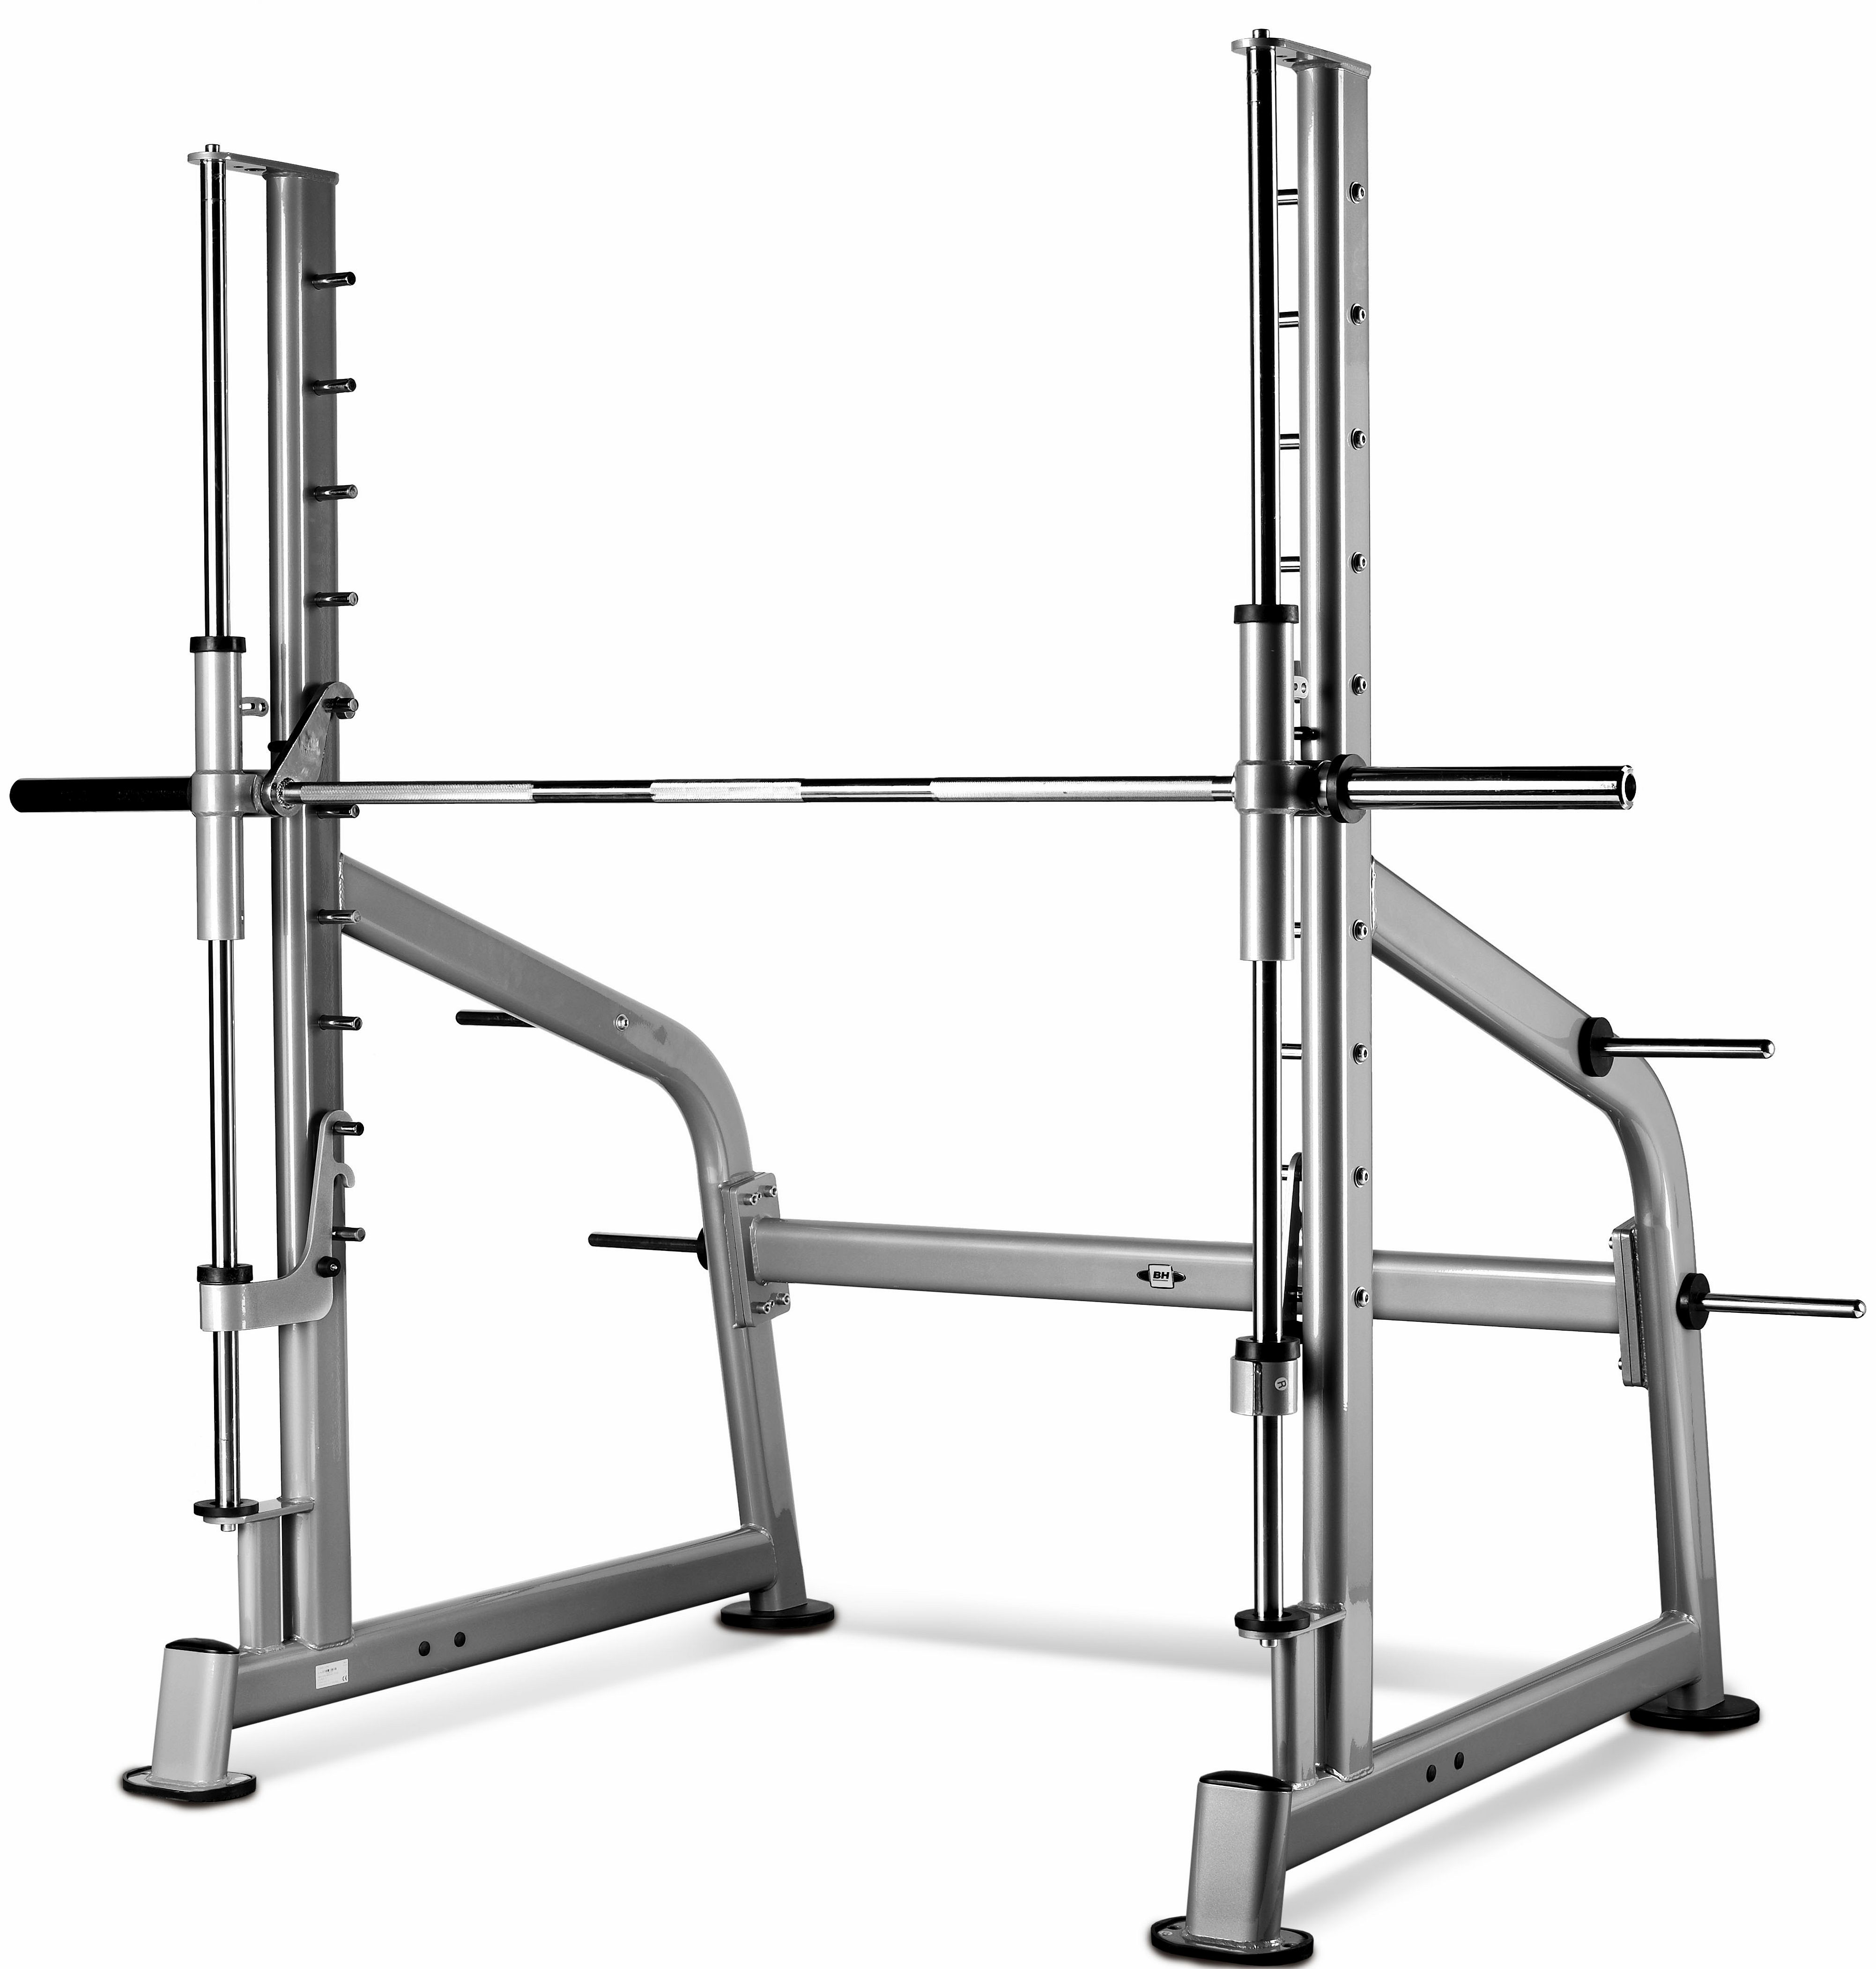 BH L350 Multi Press-Smith Machine